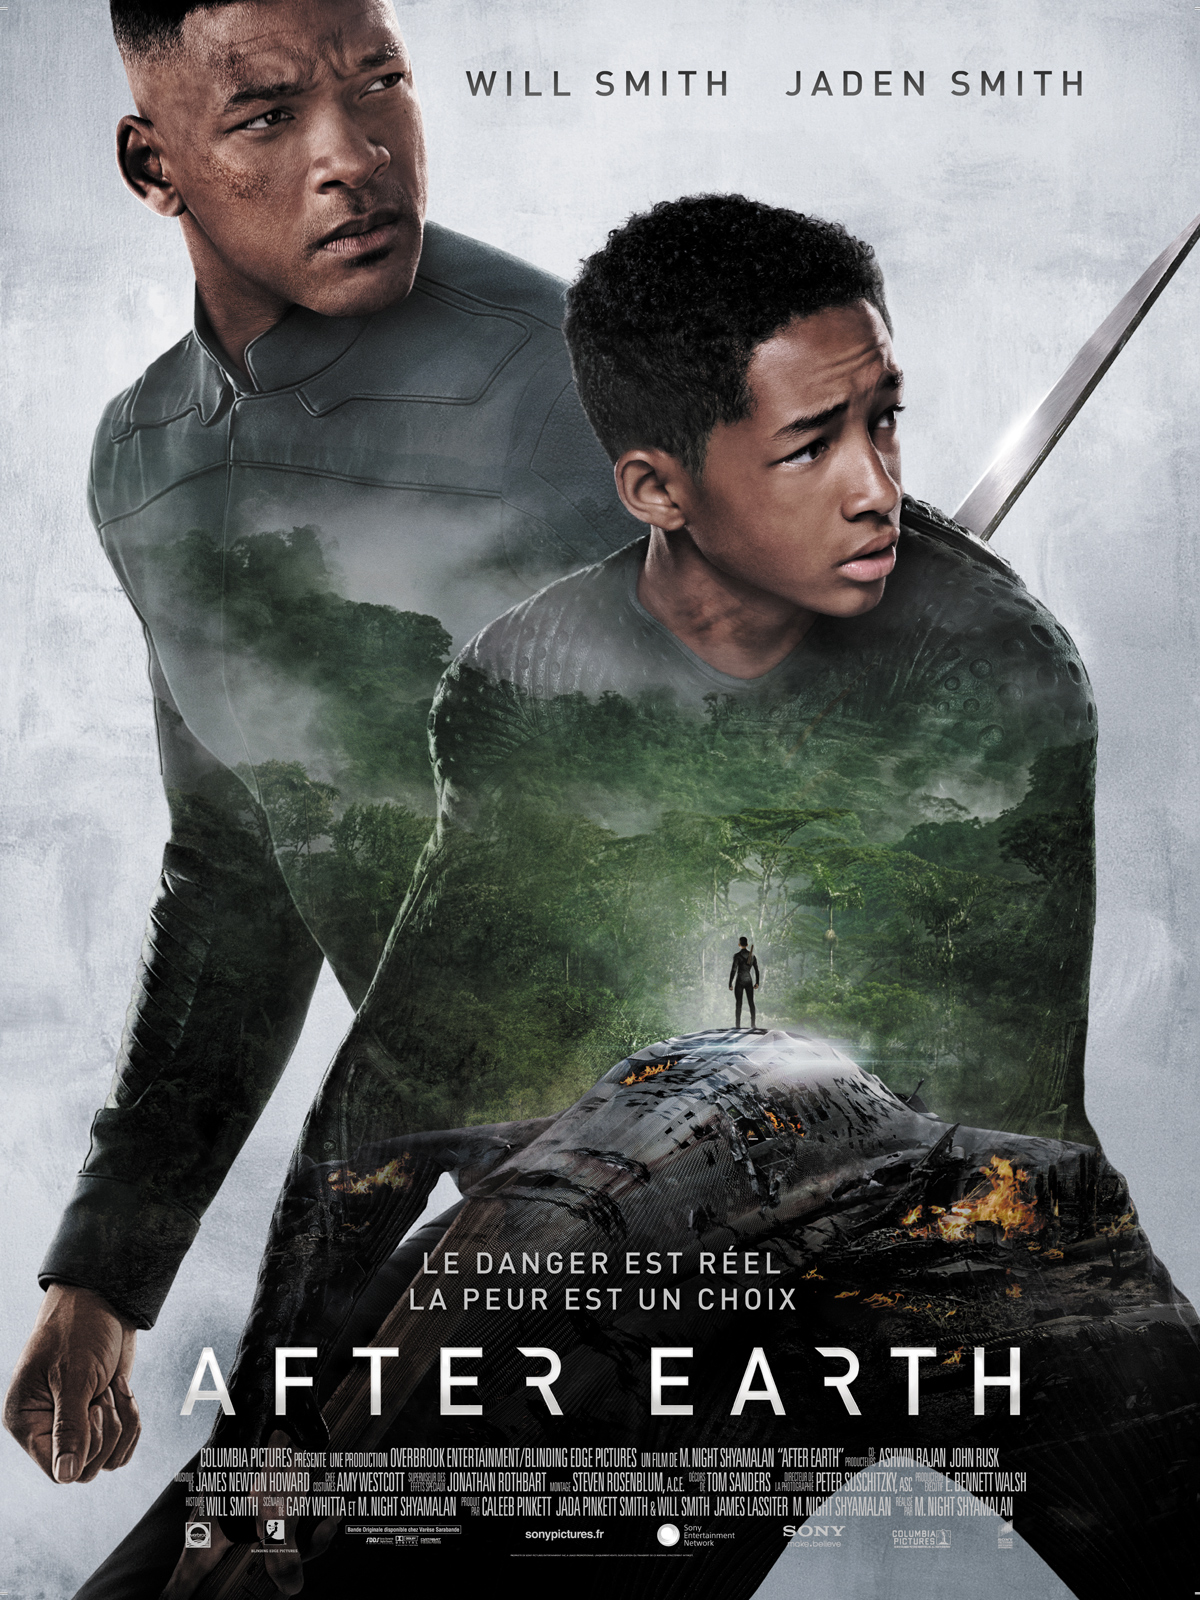 20509208 After Earth [DVDRiP]